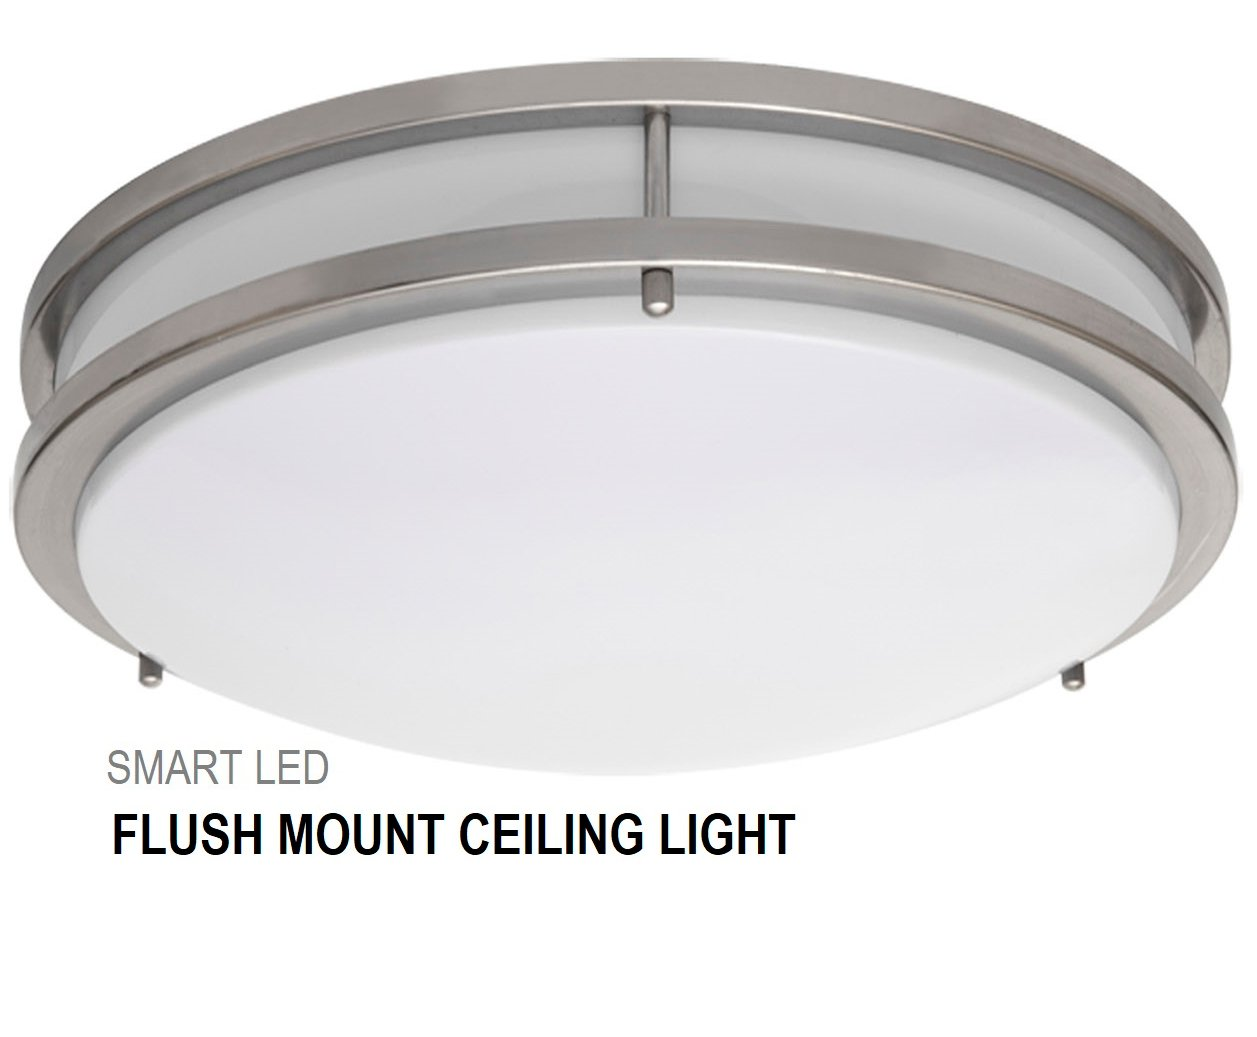 SmartLED 16-Inch LED Flush Mount Ceiling Light Fixture, Antique Brushed Nickel, Dimmable, 23W (180W Equivalent) 1610 Lumens, 4000K/5000K, CRI80, ETL Listed, ENERGY STAR Certified (1-Pack, 4000K)